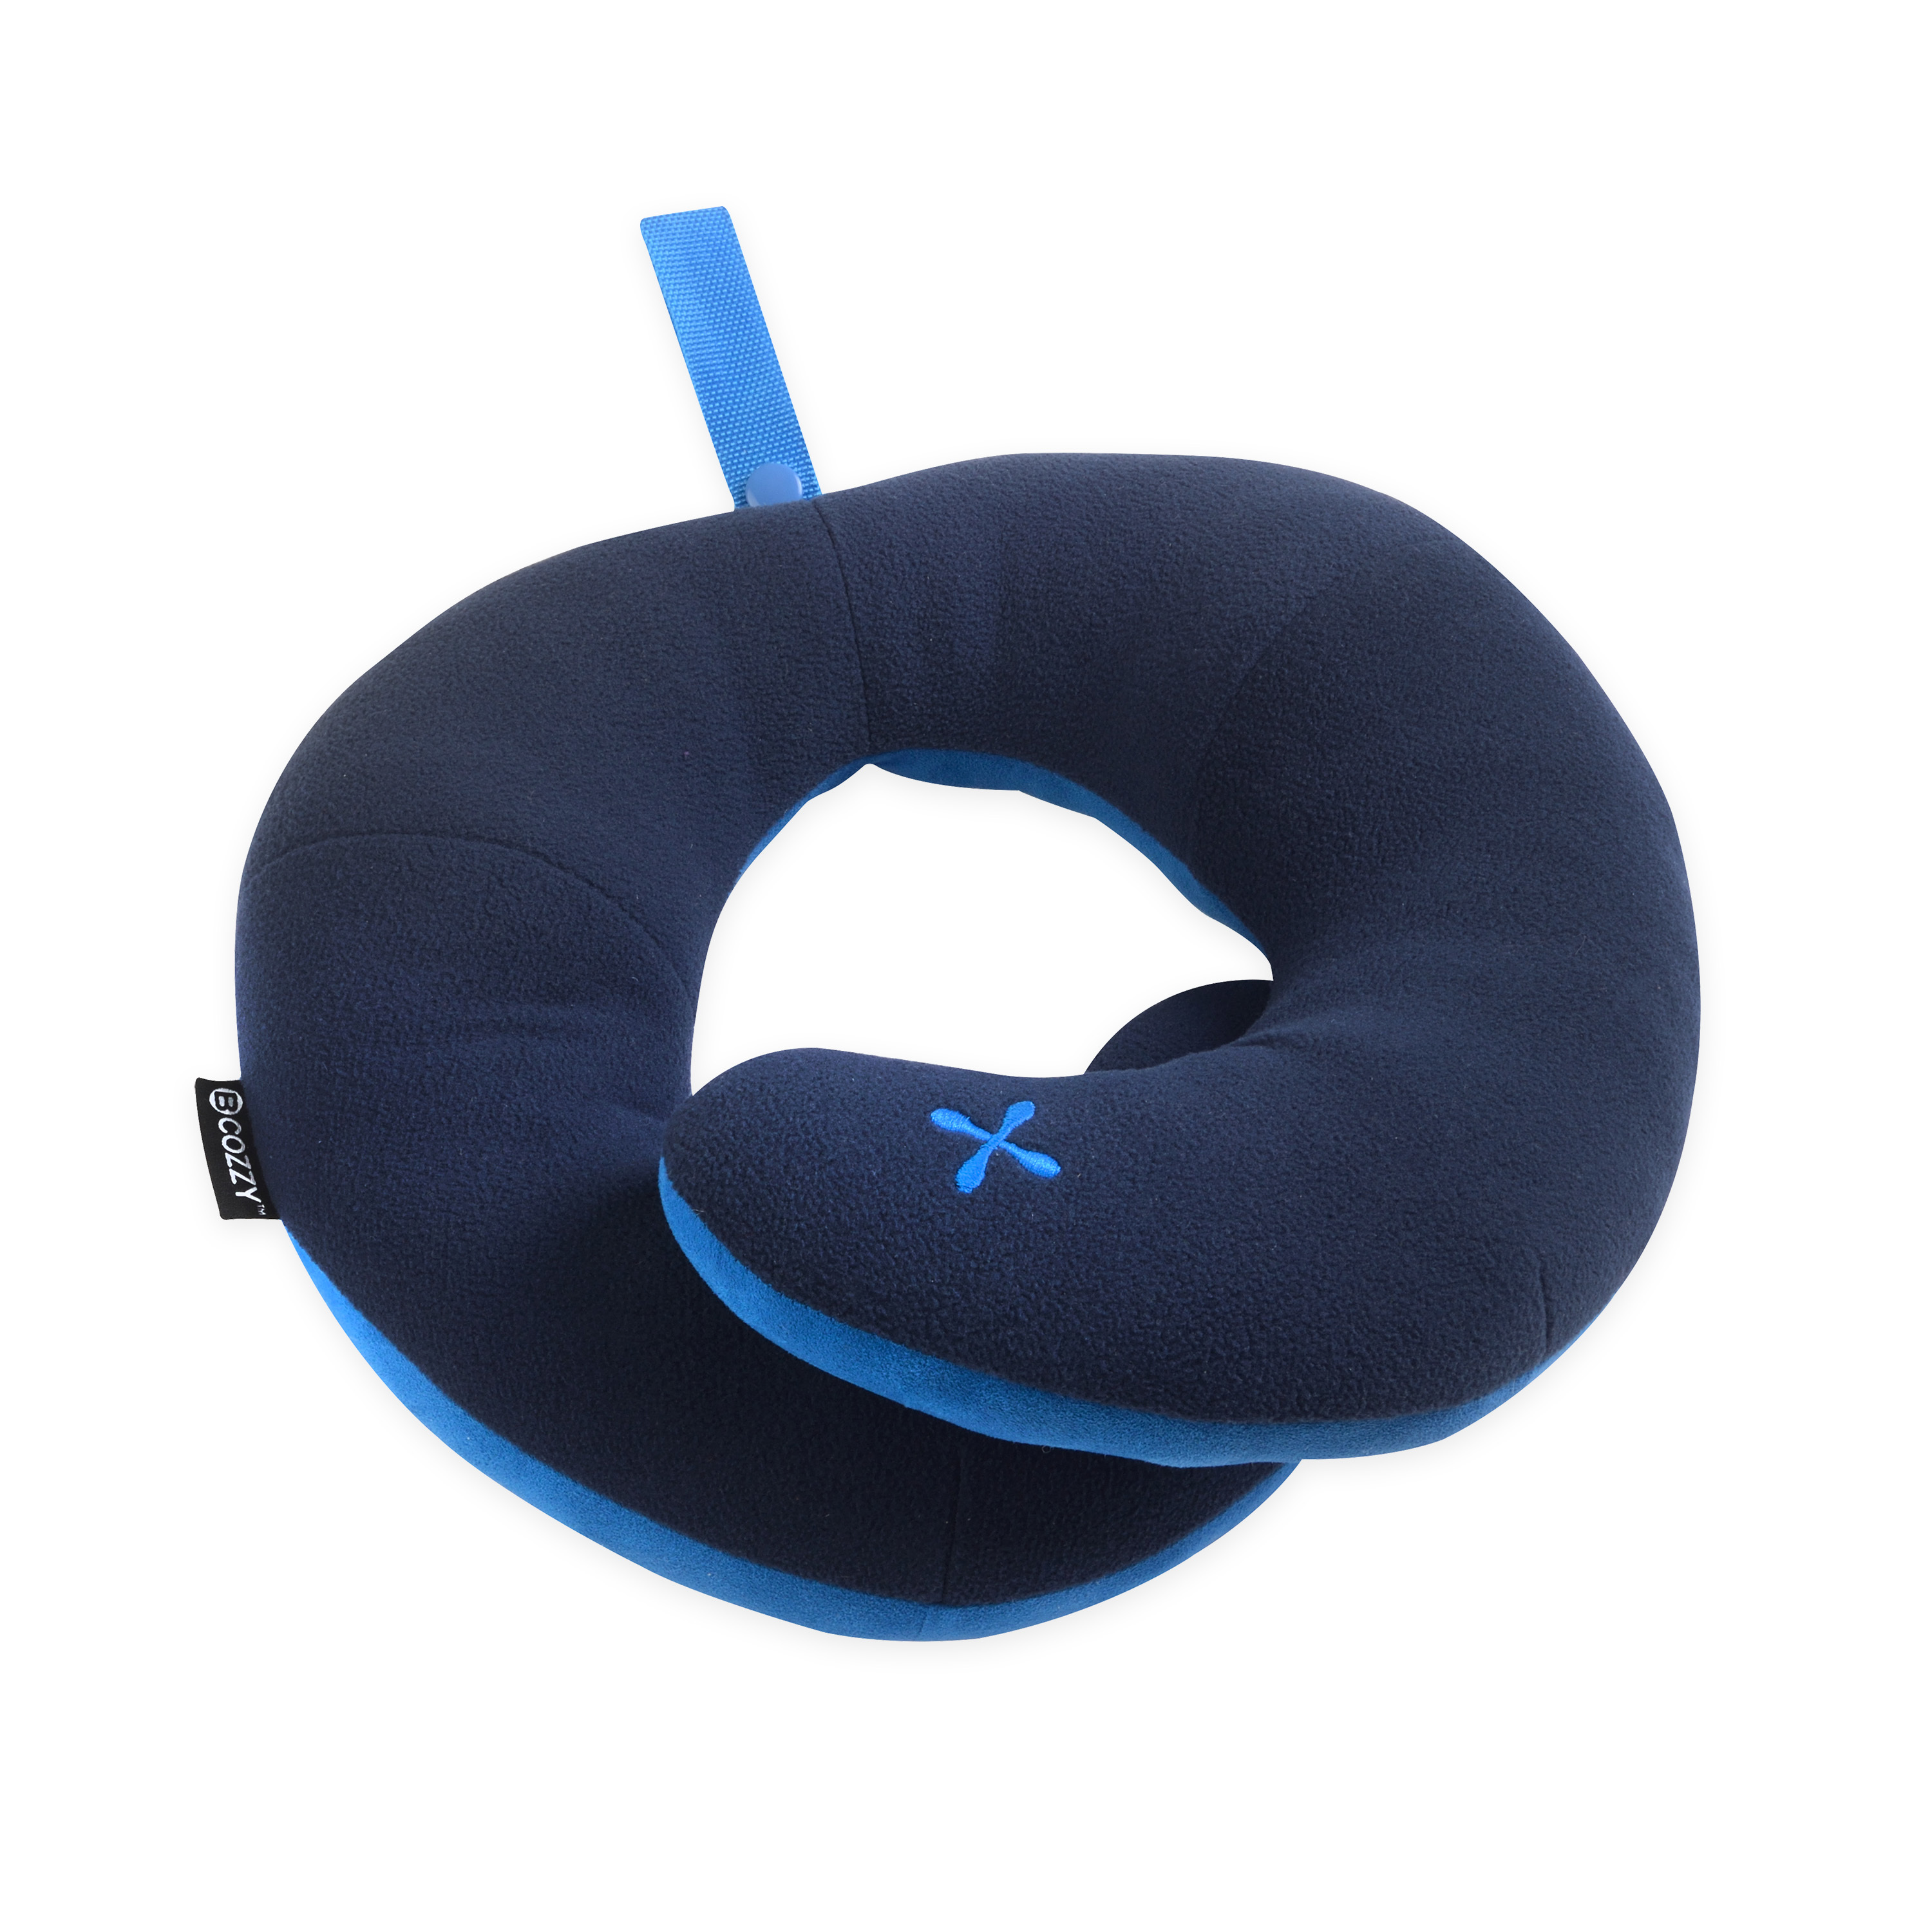 BCOZZY-Navy-neck-pillow.jpg?mtime=20190130120440#asset:104662